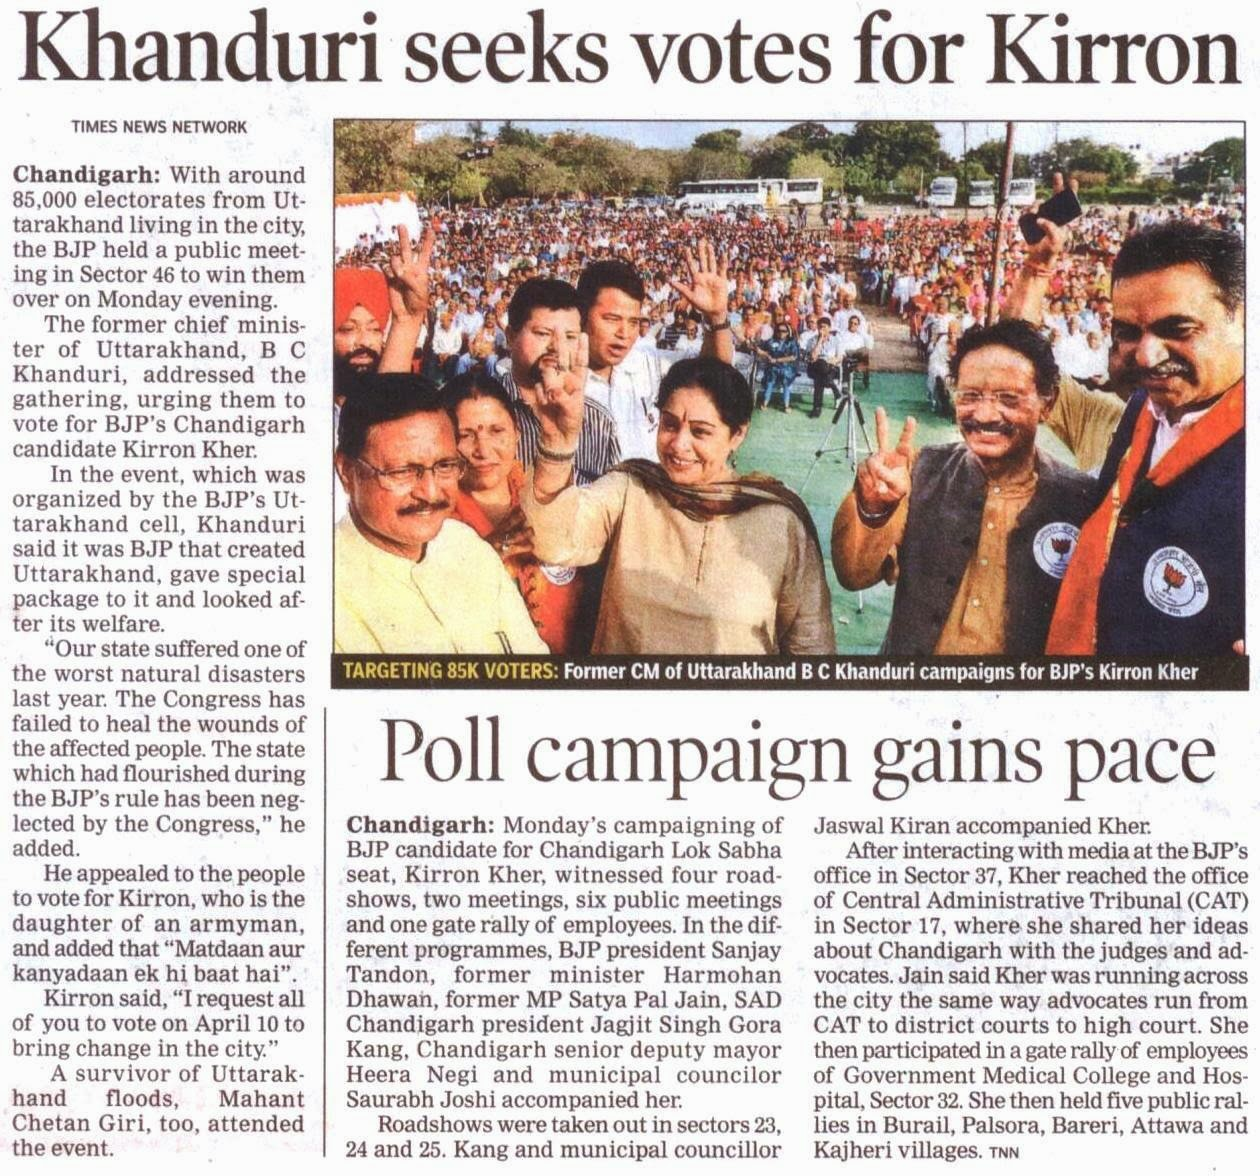 Former CM of Uttrakhand B C Khanduri campaigns for BJP's Kirron Kher. Alongwith Ex-MP Satya Pal Jain & other BJP leader